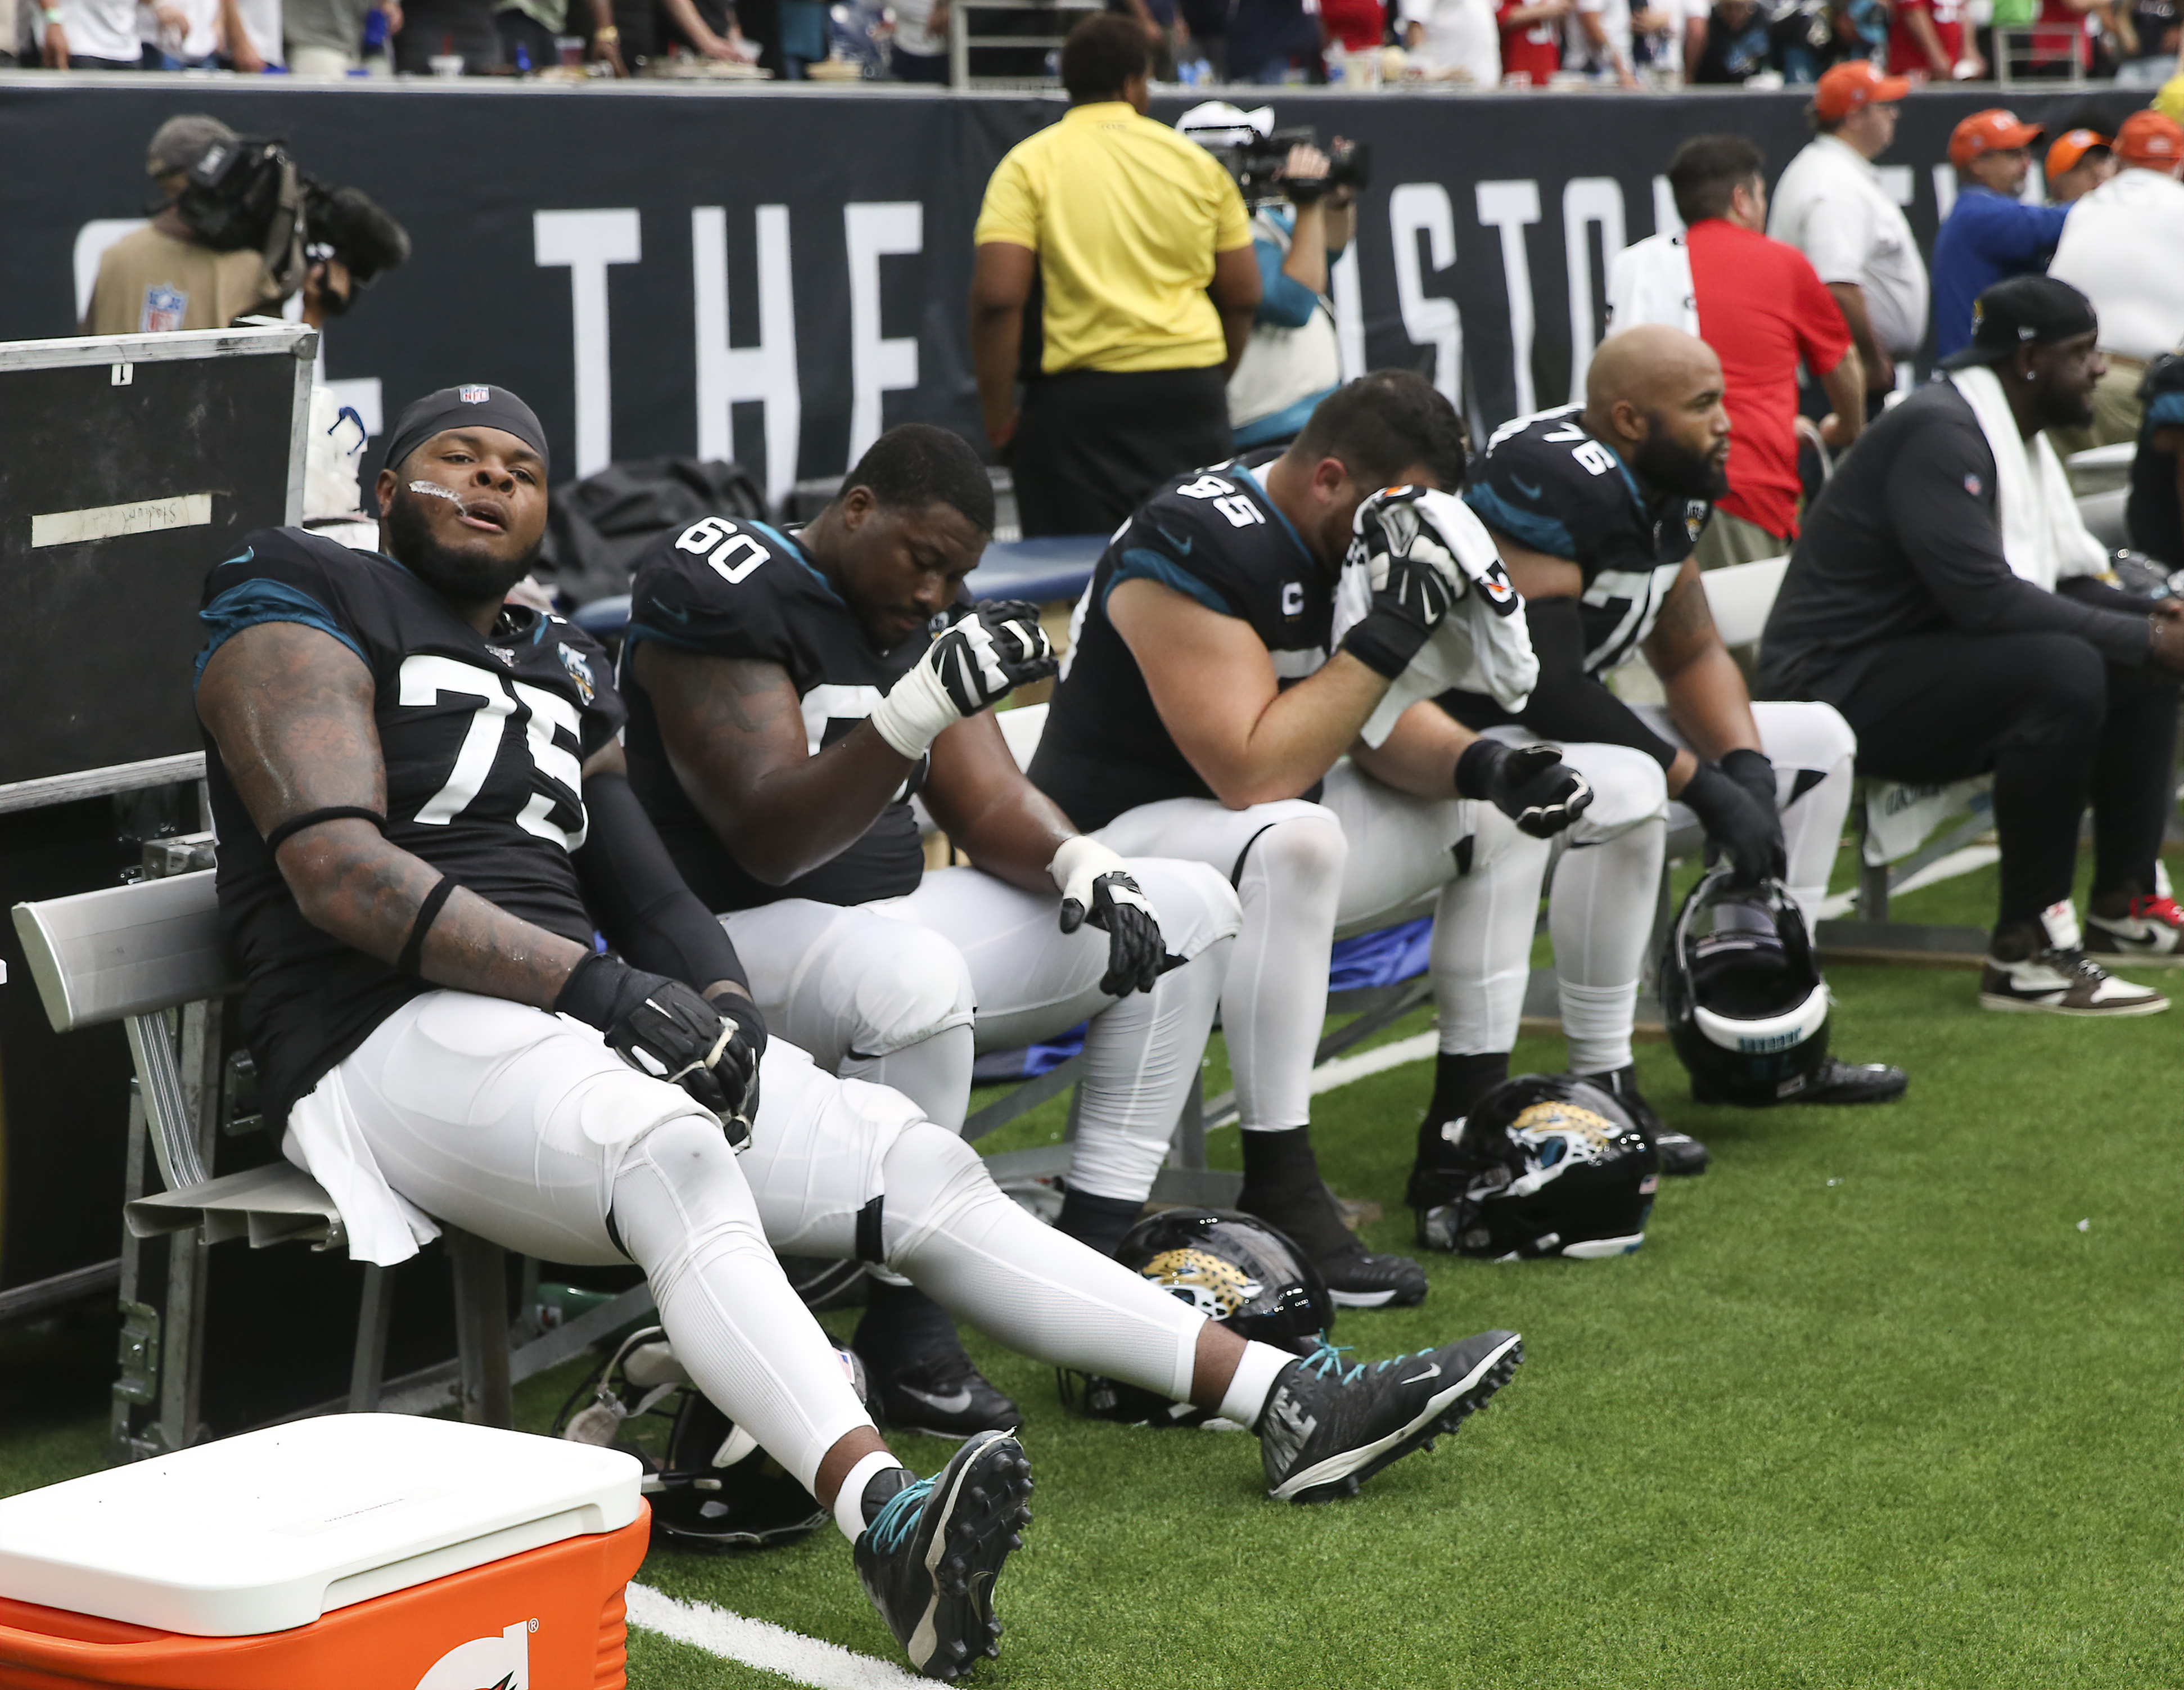 How Do the Jaguars' Coaches and Executives View the Offensive Line Heading Into the Offseason?